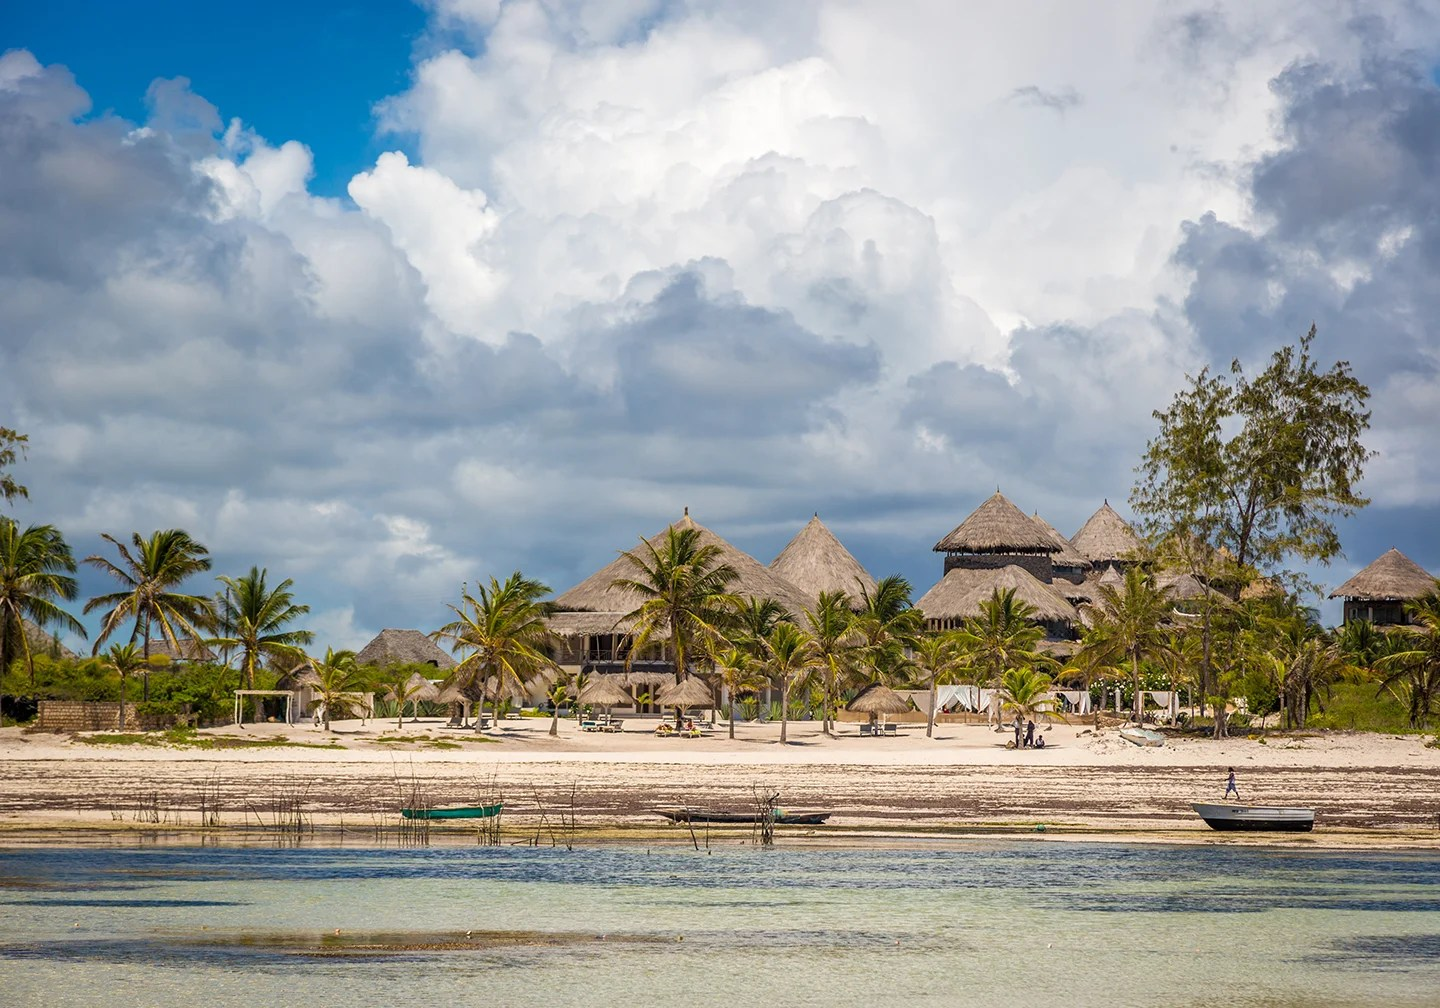 A view taken from the sea of traditional huts in Watamu, Kenya. There is shallow, clear water in the foreground and cloudy sky in the distance